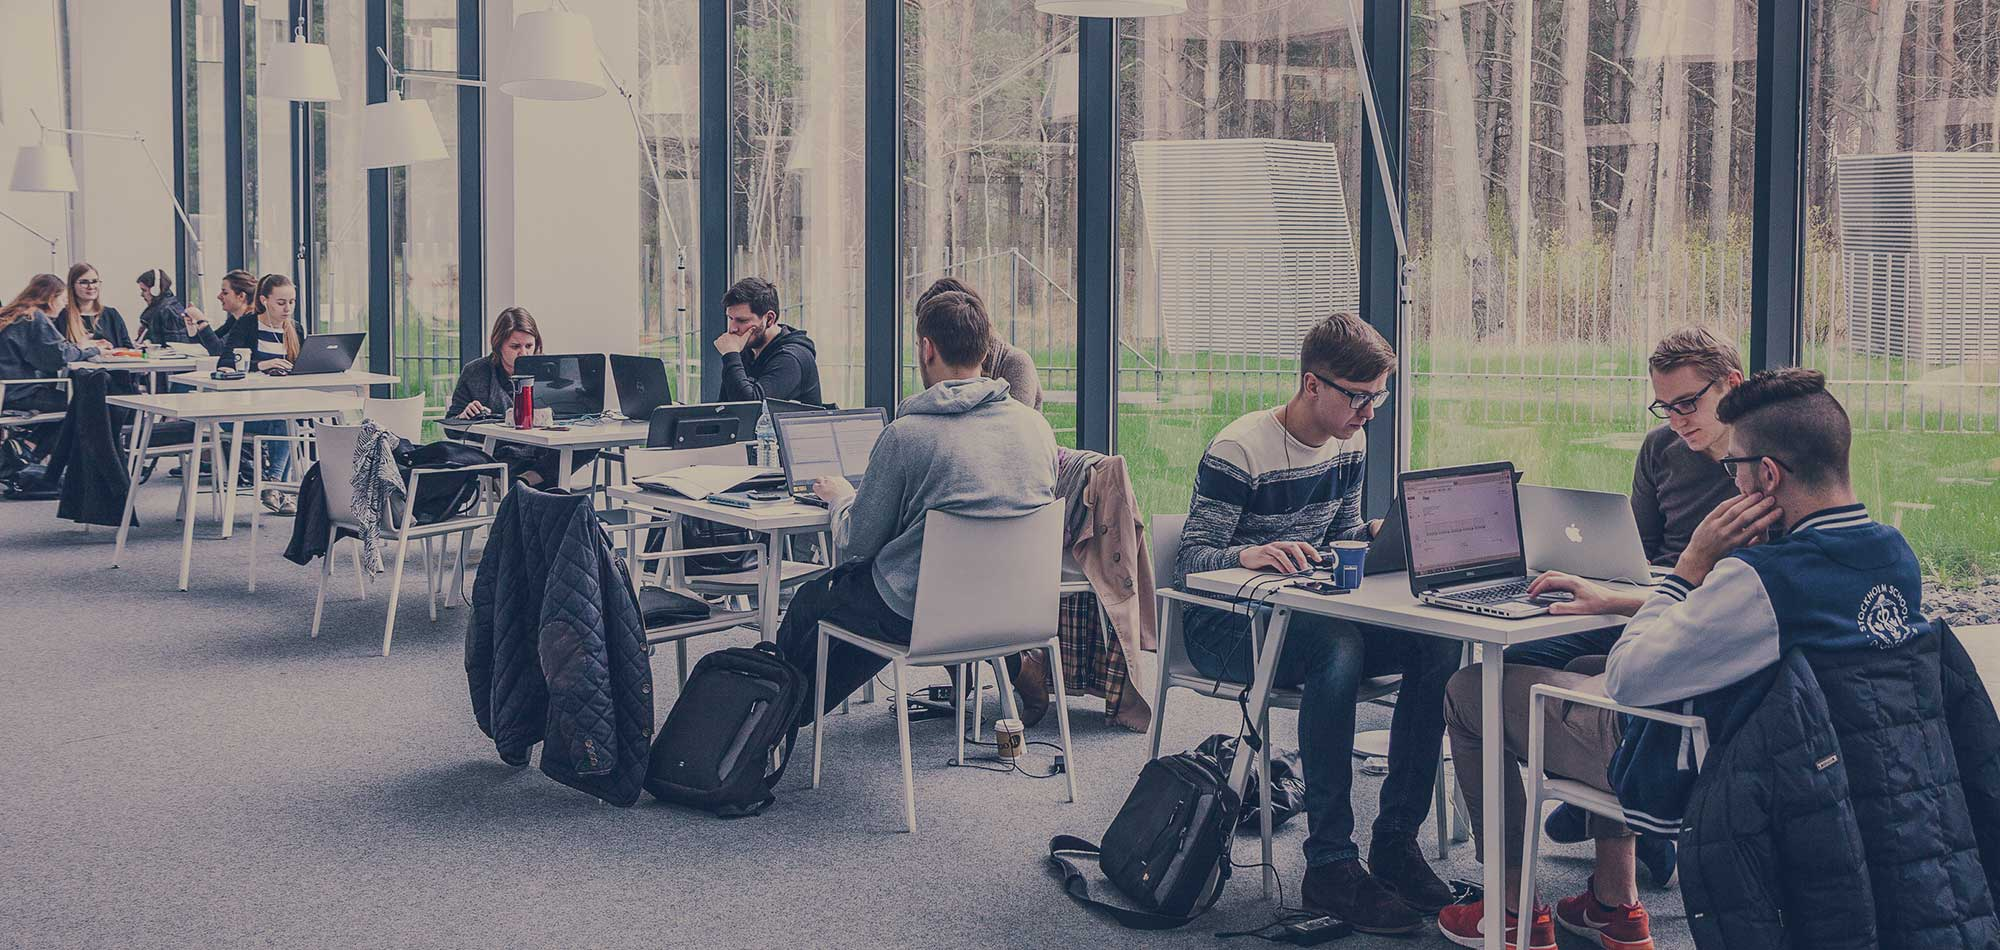 3 WLAN Design Tips that Will Improve the Campus Wi-Fi Experience